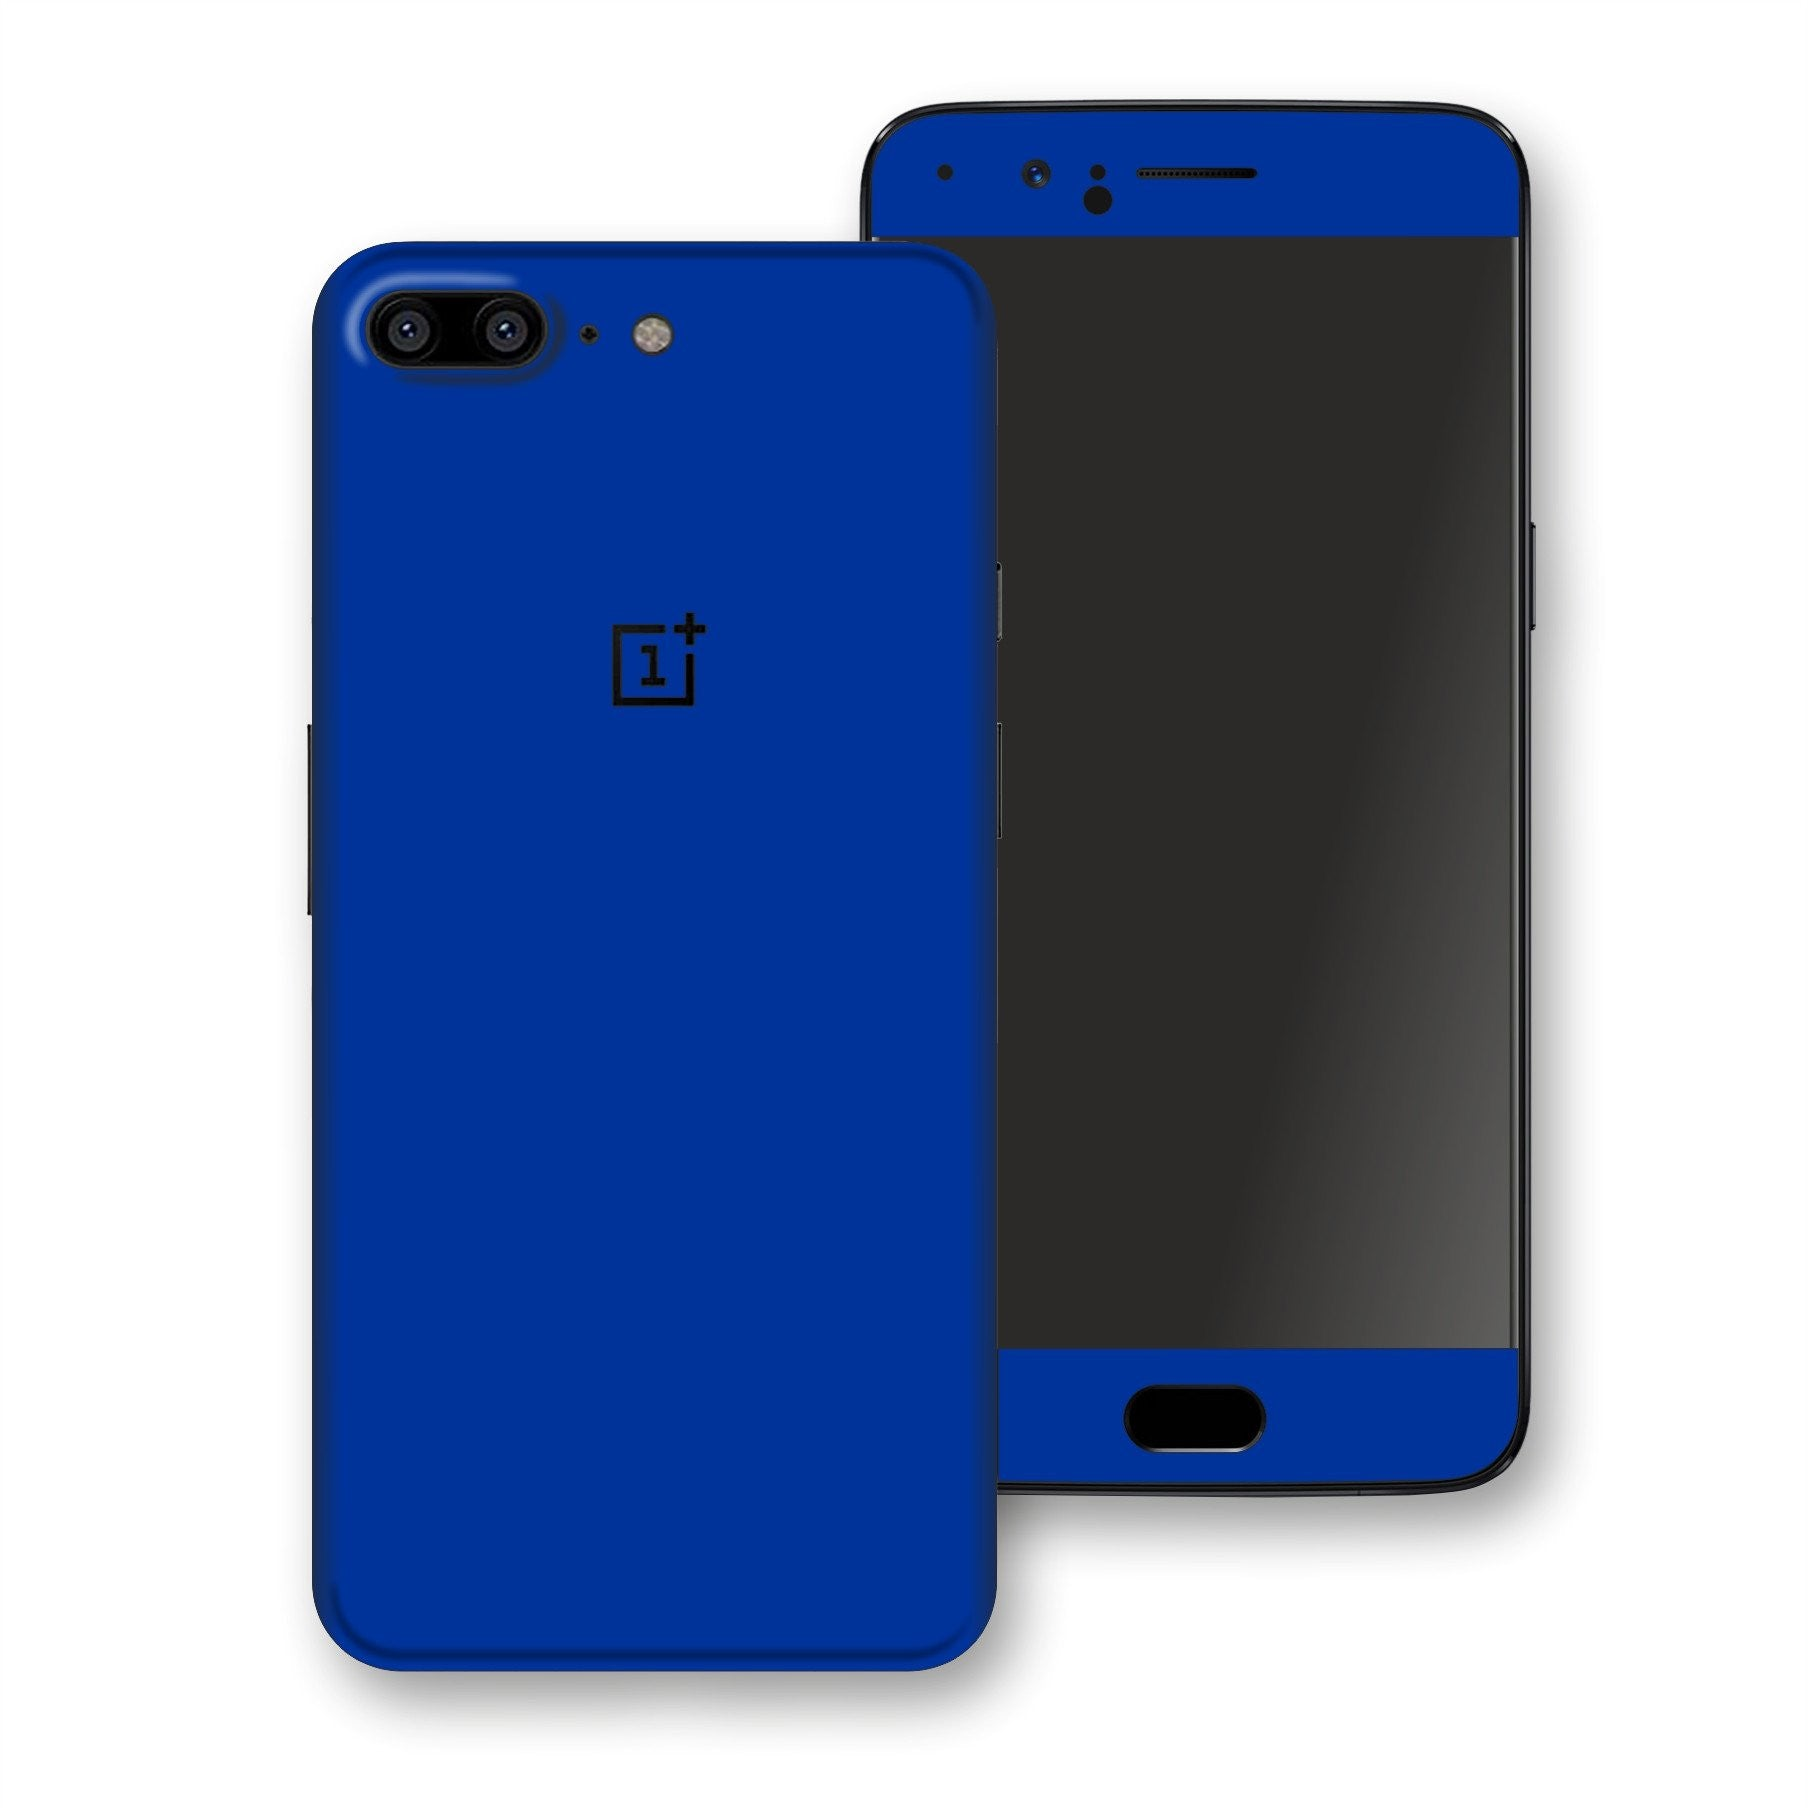 OnePlus 5 Royal Blue Glossy Gloss Finish Skin, Decal, Wrap, Protector, Cover by EasySkinz | EasySkinz.com